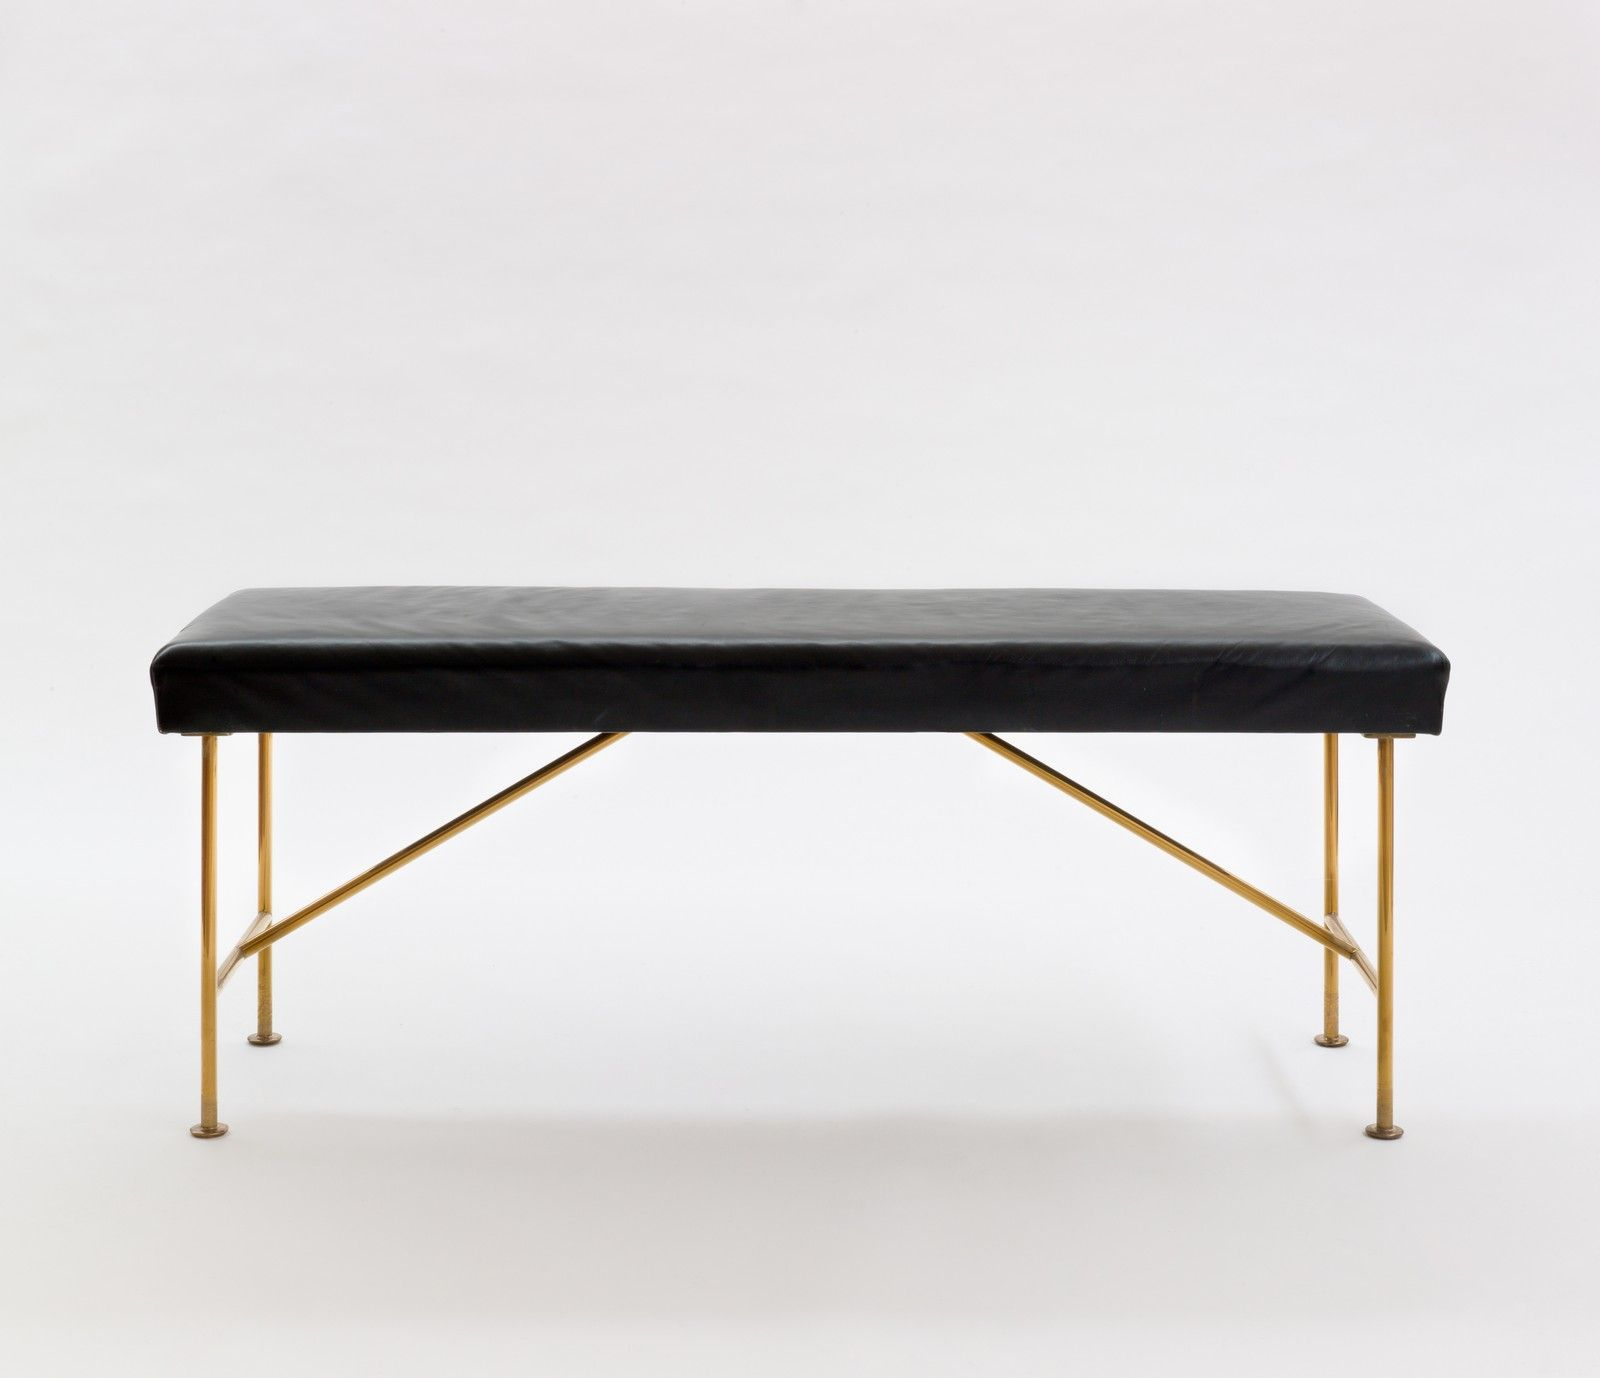 Alexander Girard Brass and Leather Piano Bench for Miller House